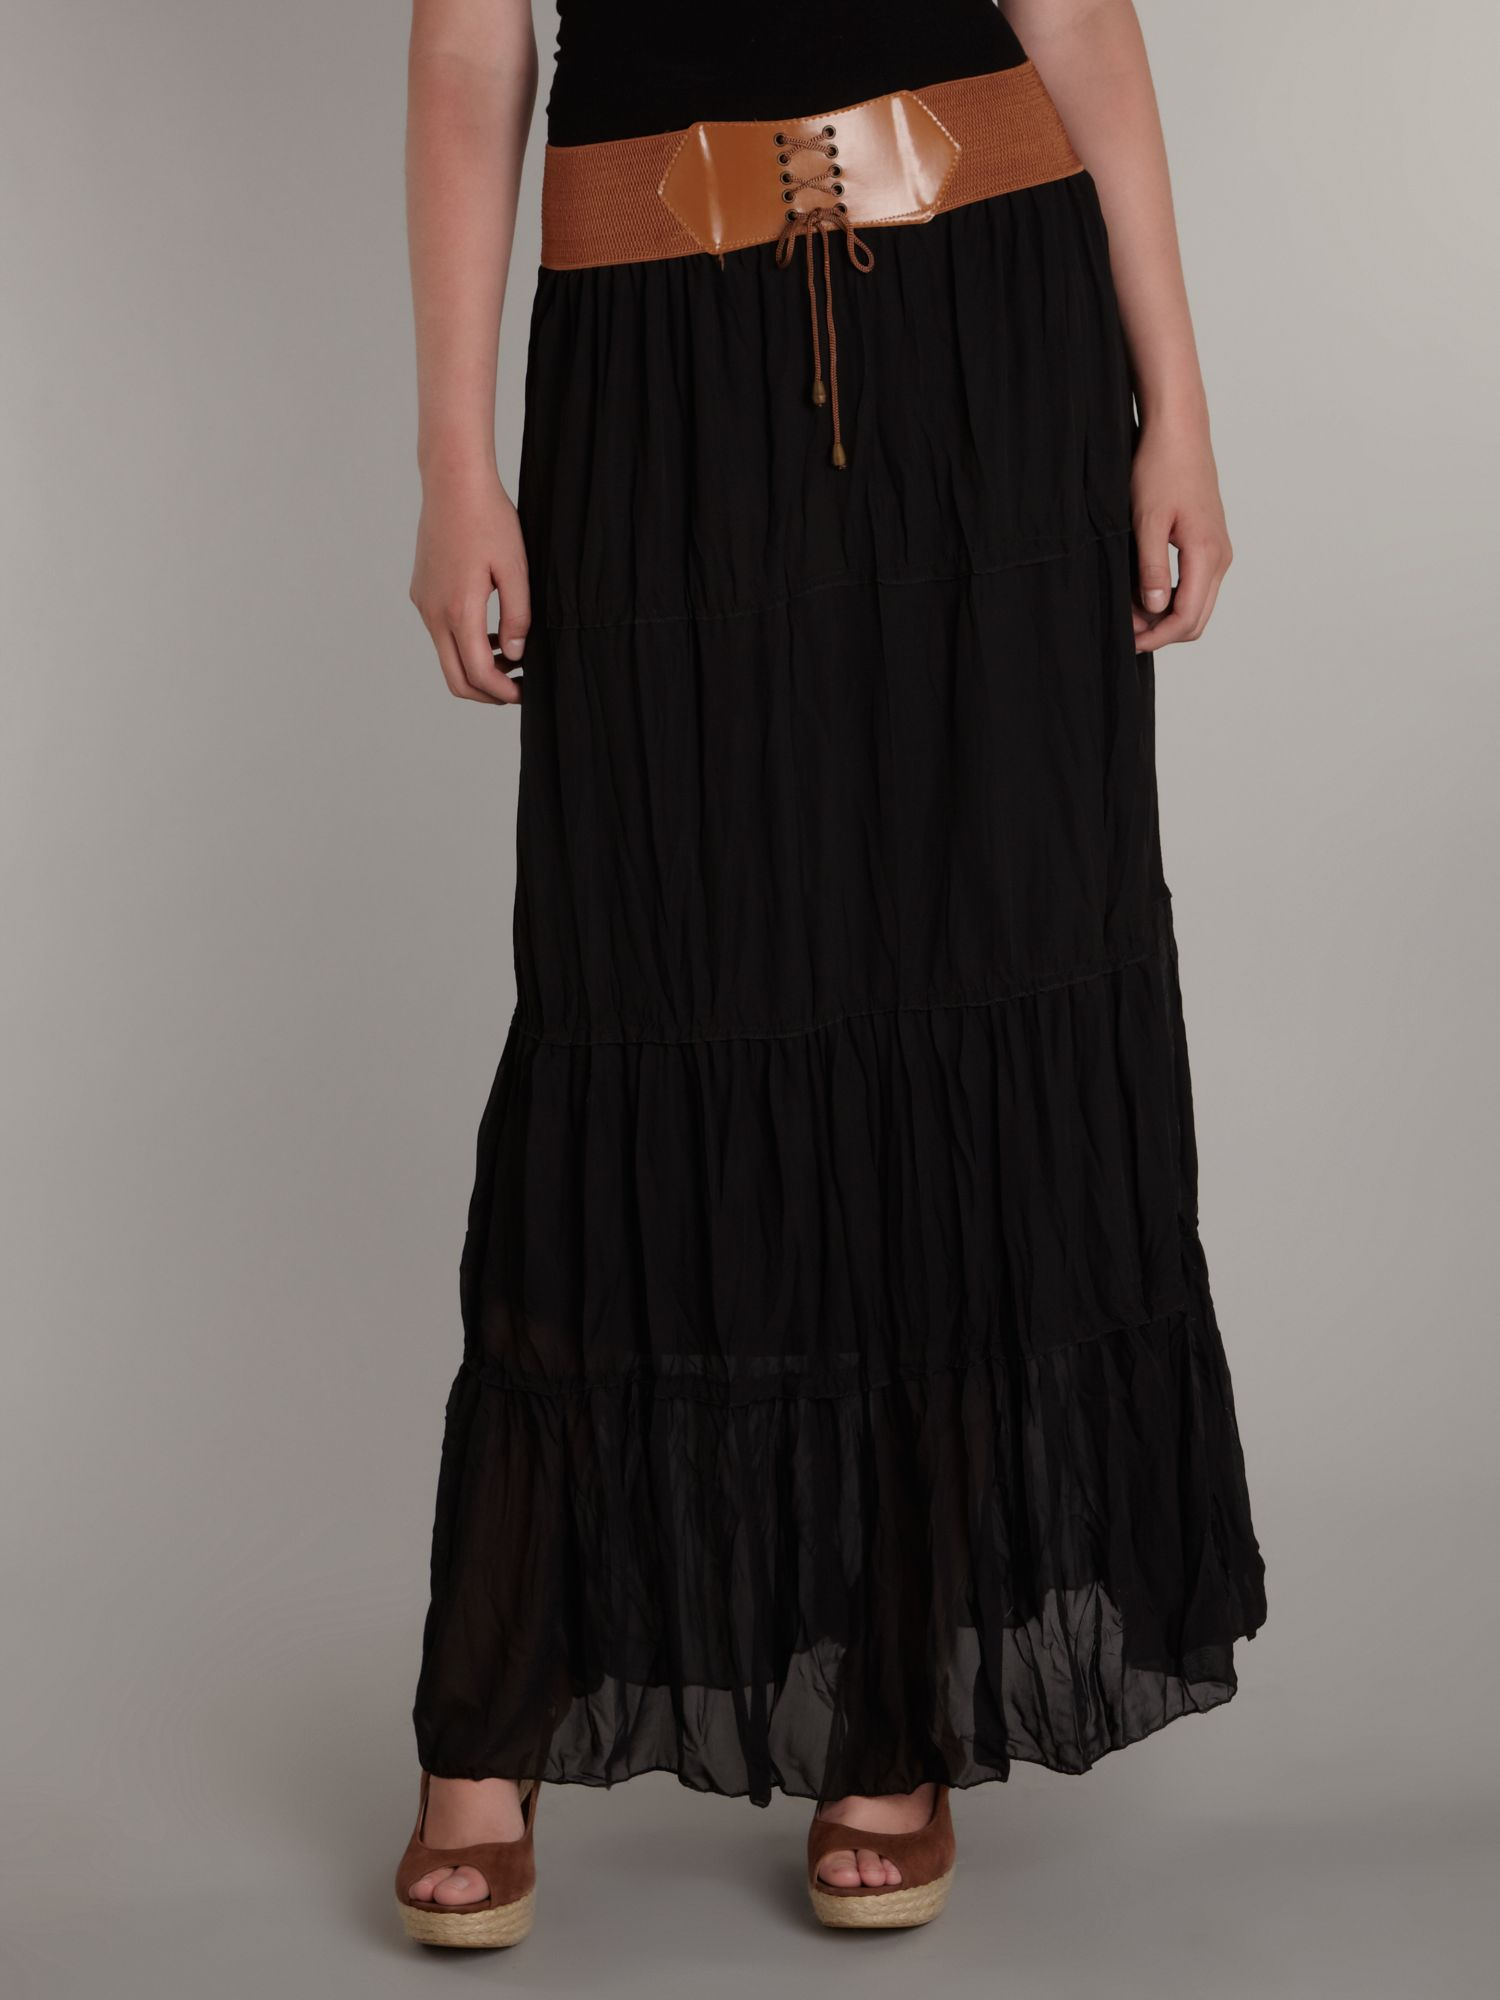 Sodamix Belted Waist Crinkle Maxi Skirt in Black | Lyst